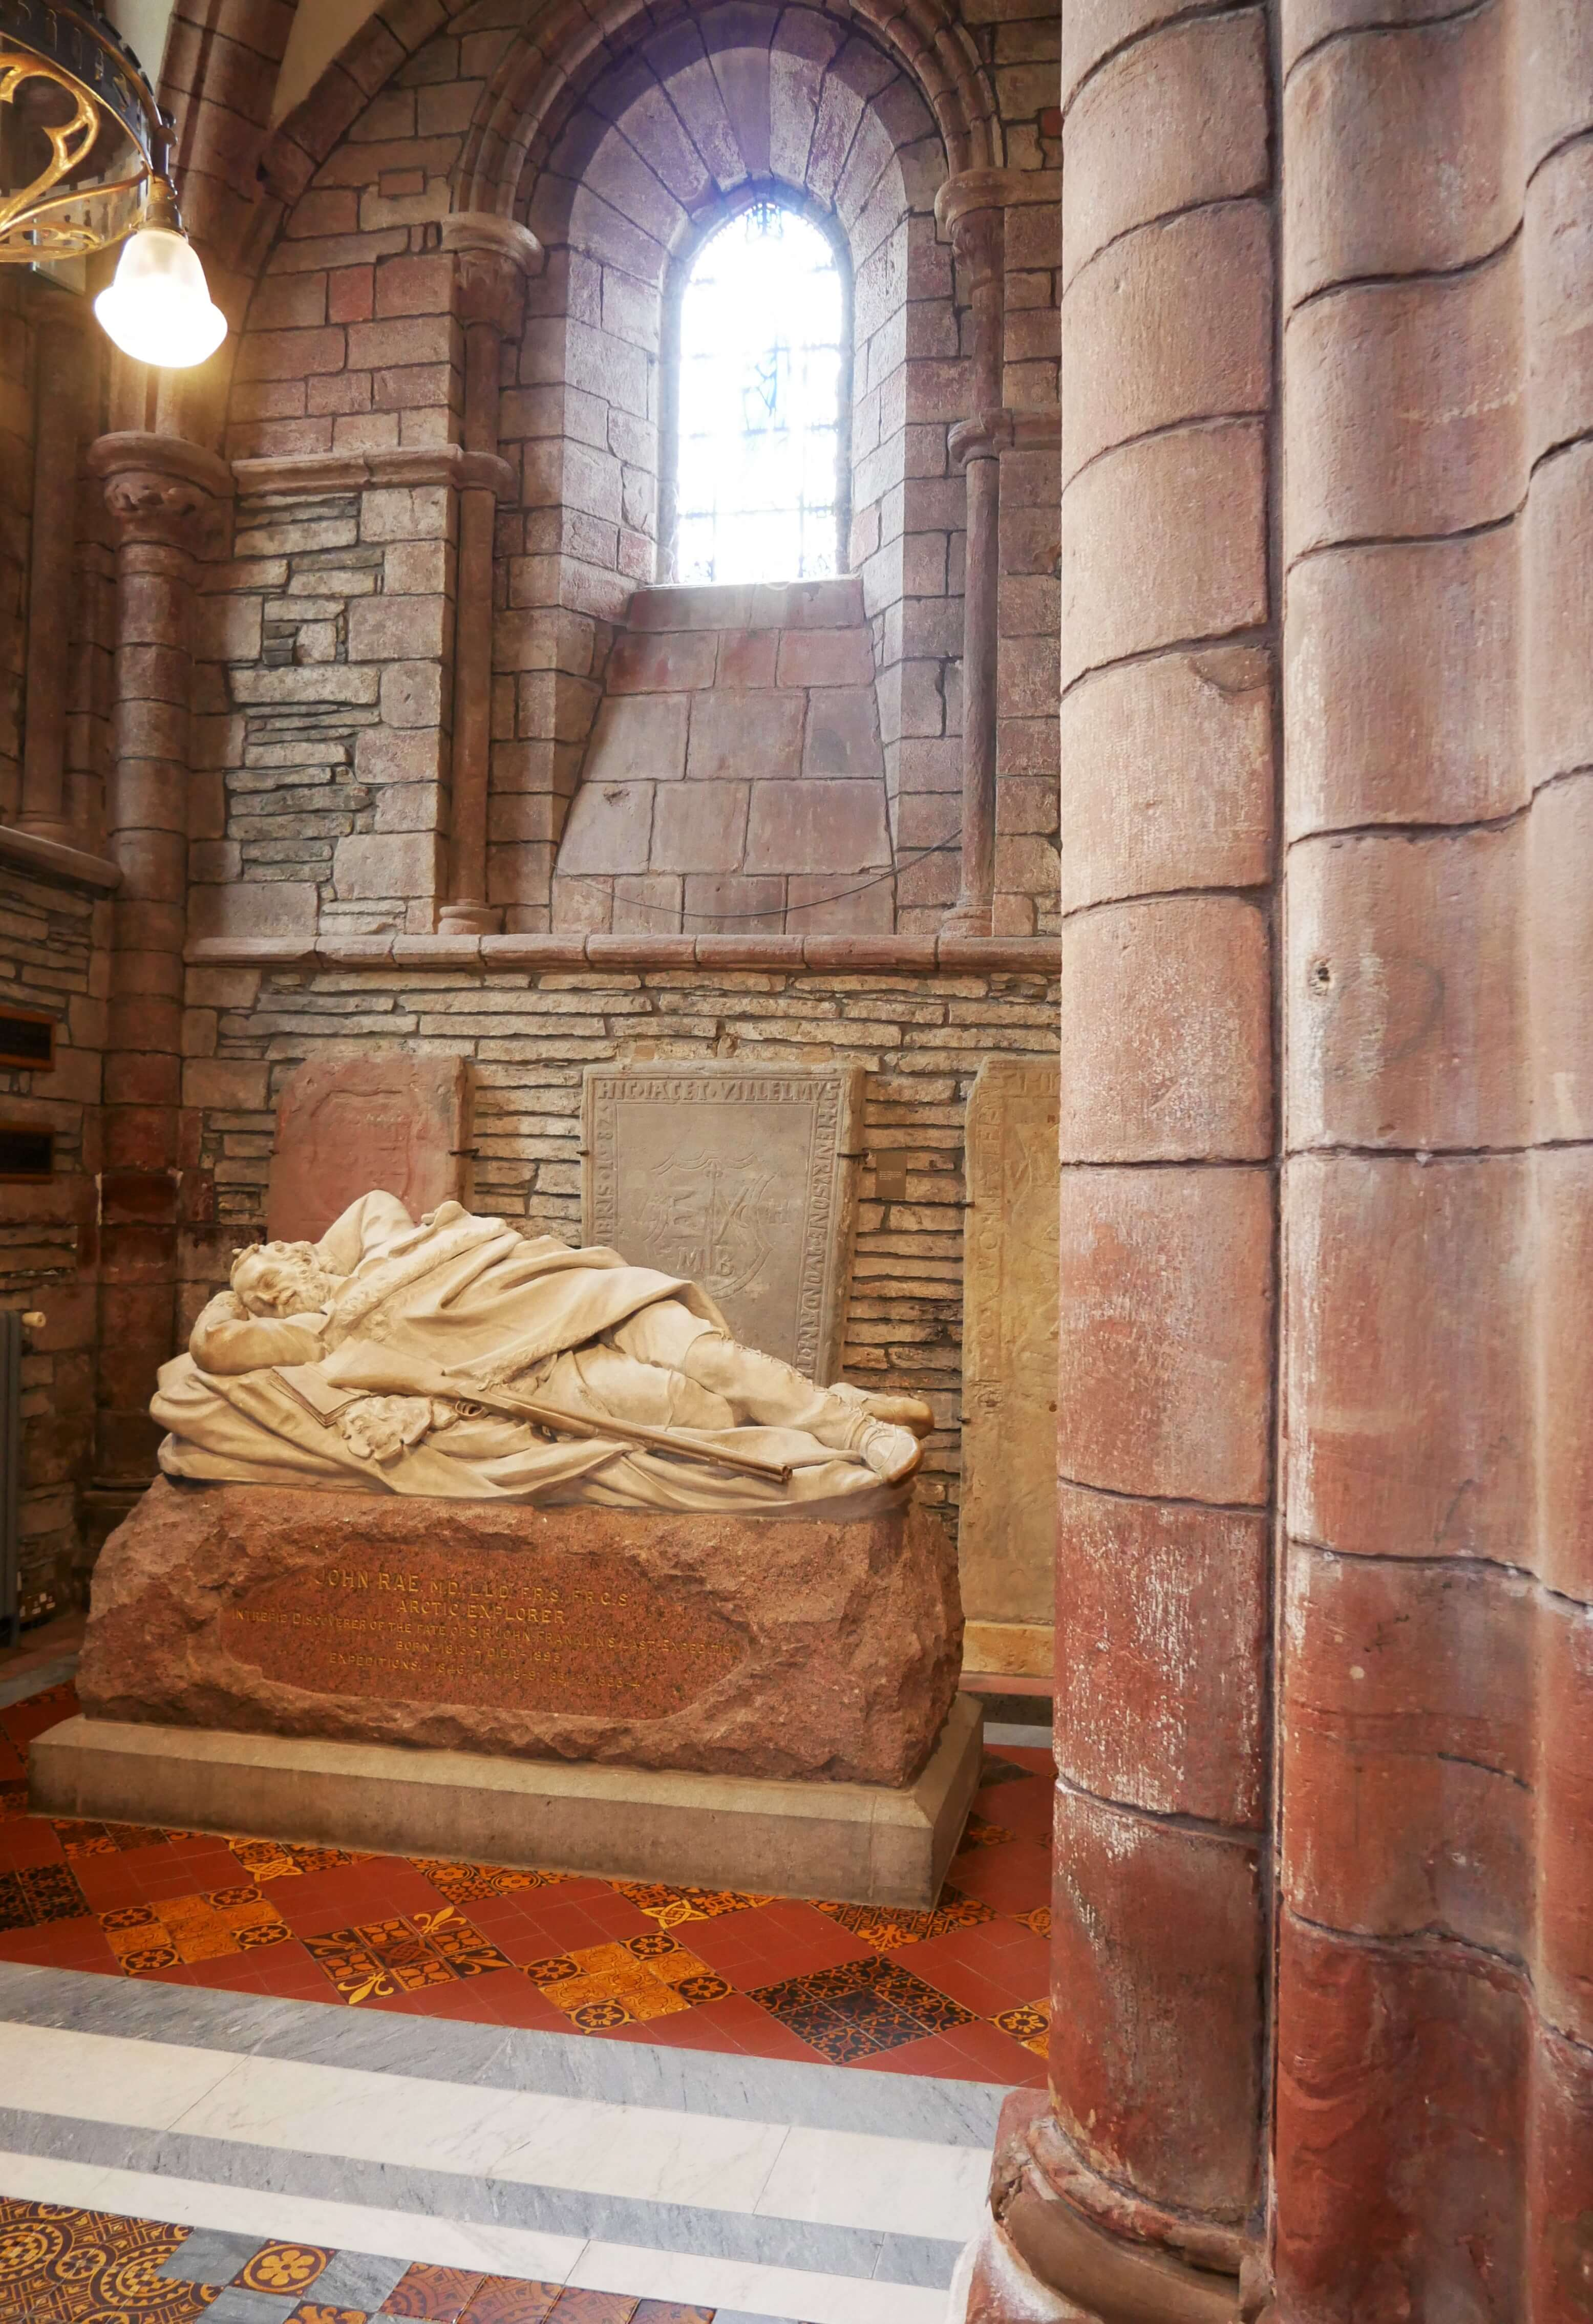 The statue of a sleeping Rae in St Magnus Cathedral, Kirkwall, Orkney Islands, Scotland, UK